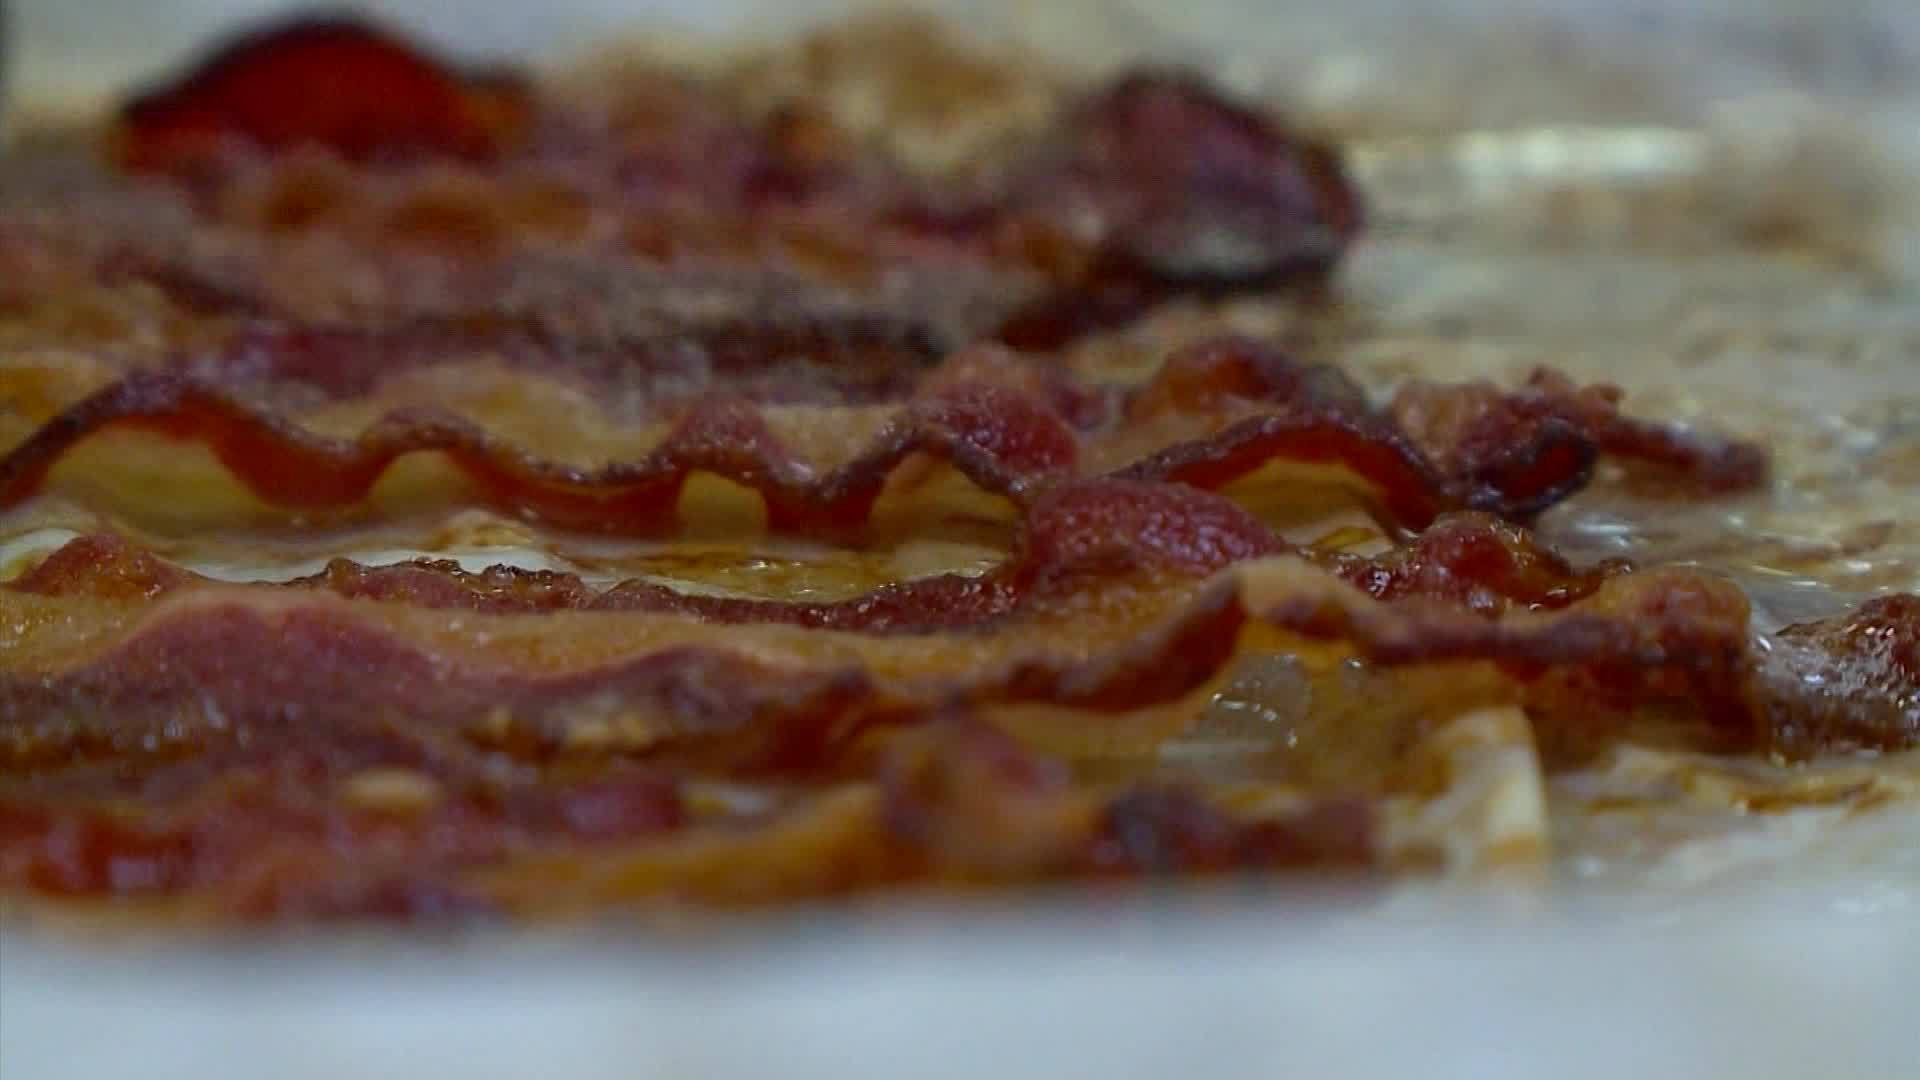 Eating just 1 slice of bacon a day linked to higher risk of colorectal cancer